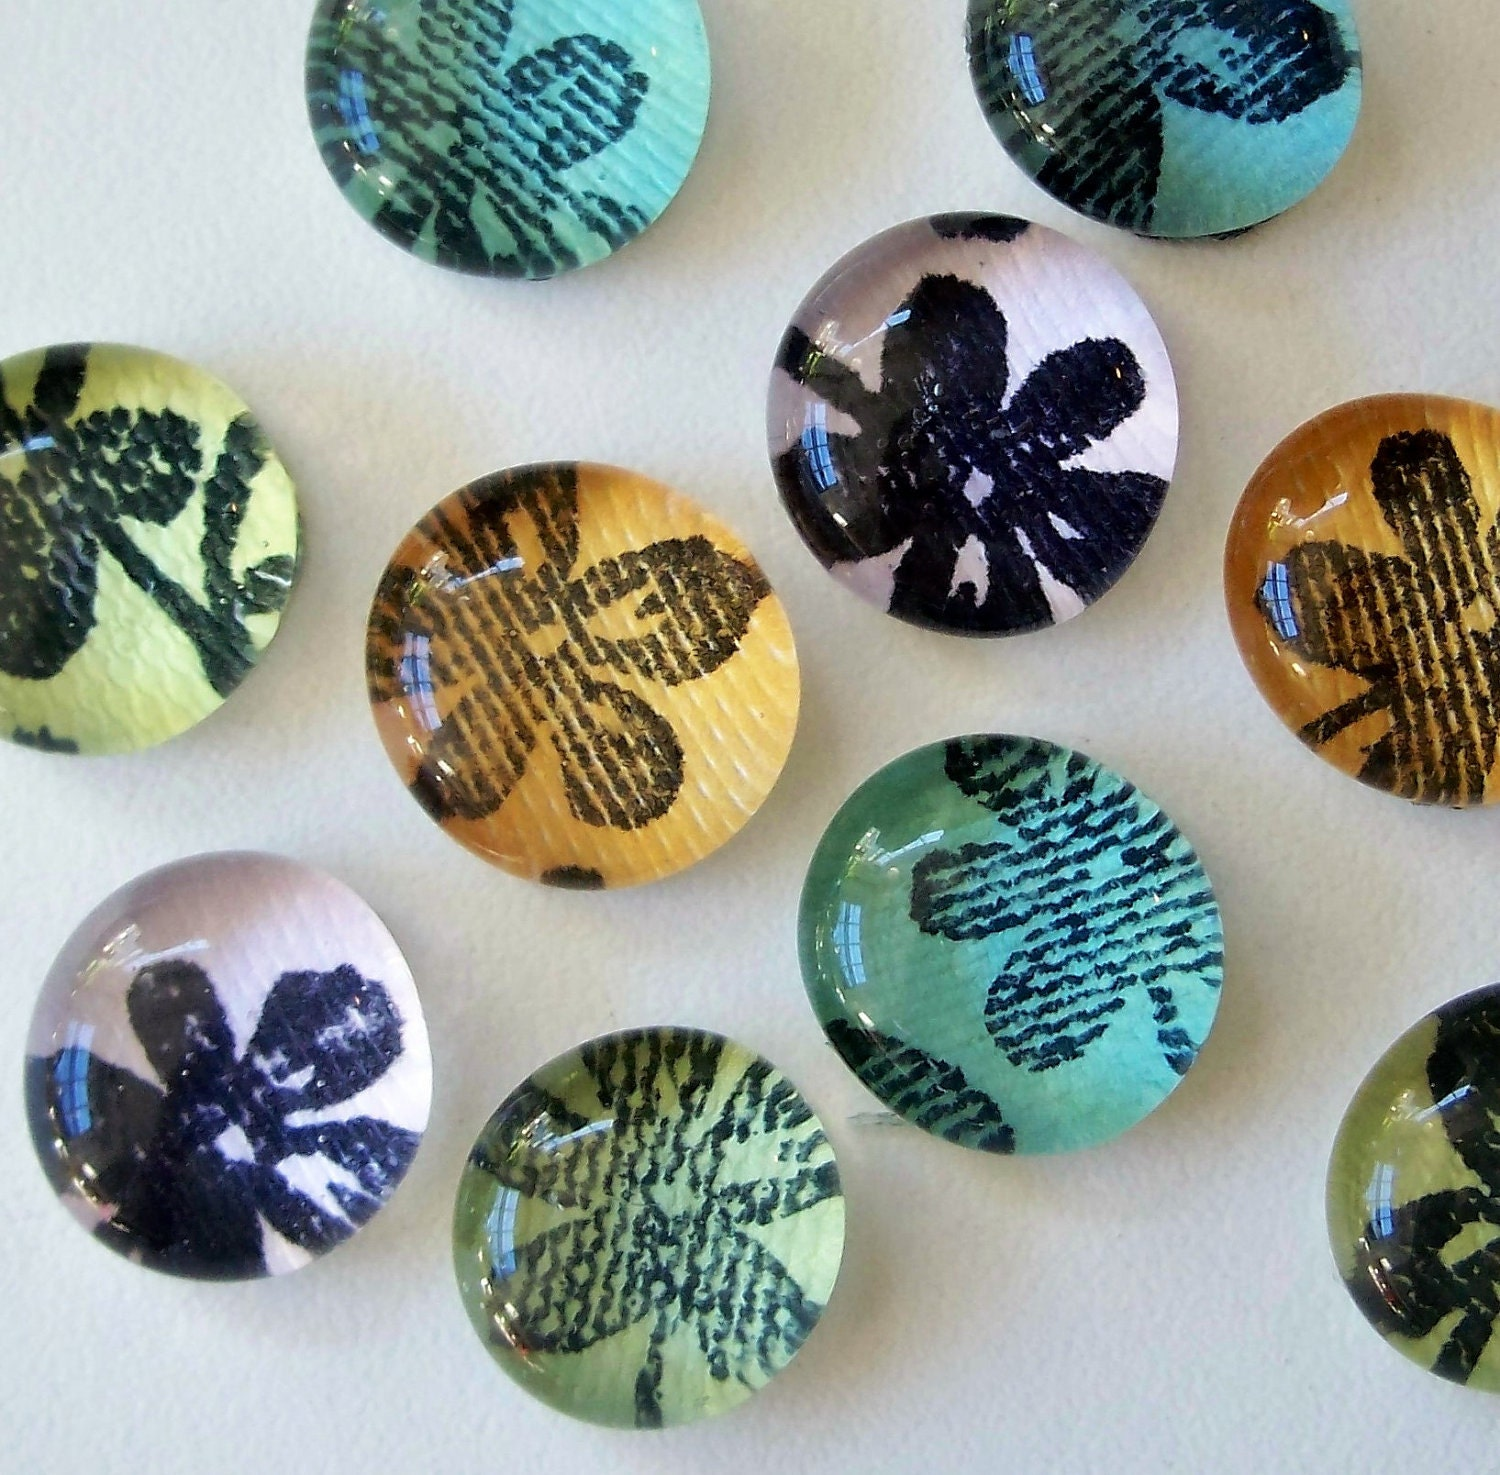 Flowers Make Me Happy - Set of 8 Glass Magnets - ArtsInRI